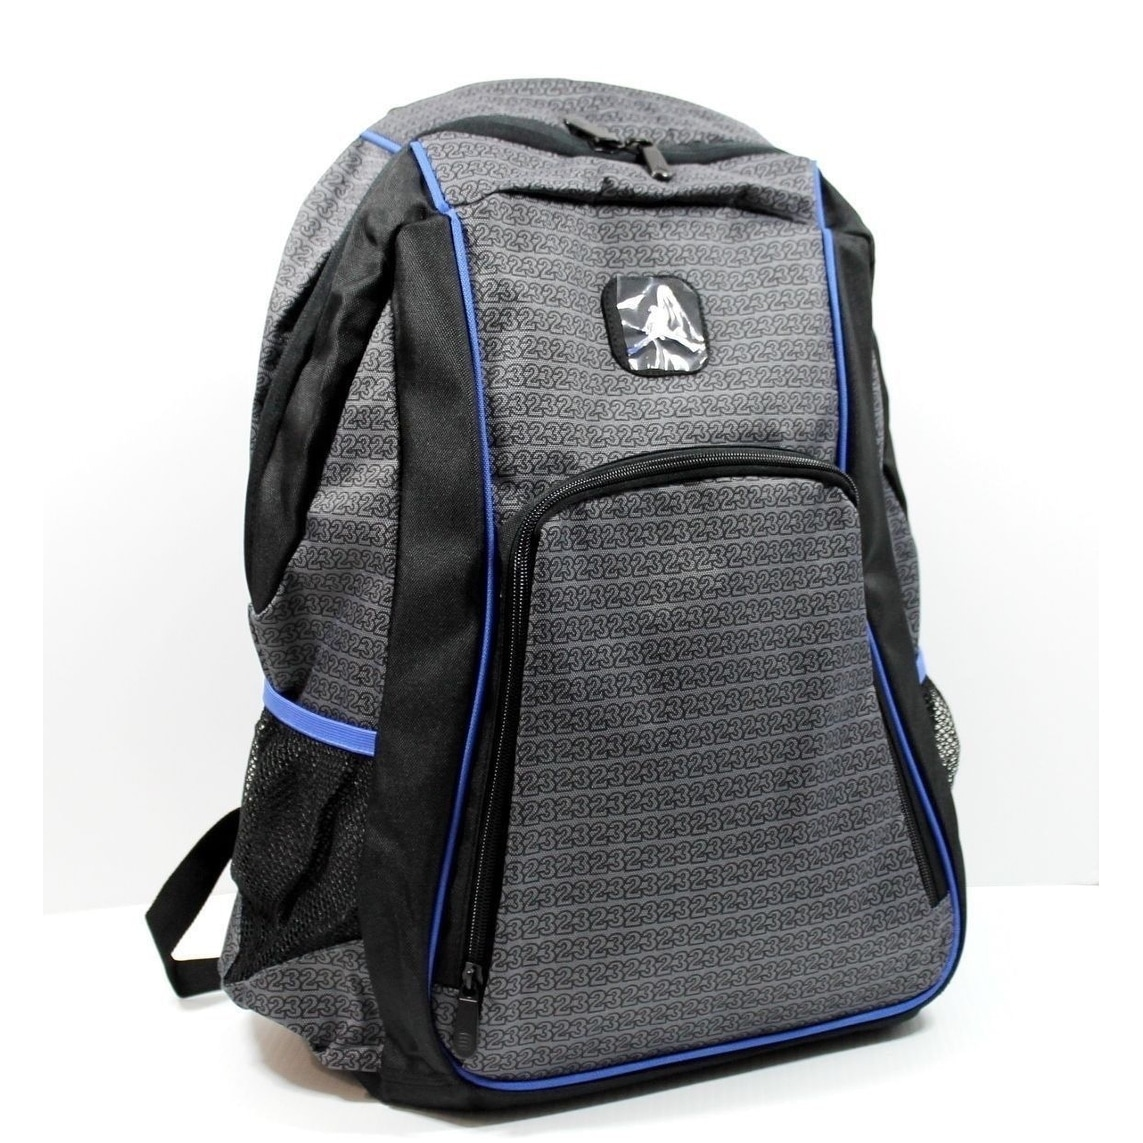 a63ff11df4ccf7 Shop Nike Jordan Jumpman 23 Big Students School Backpack with Laptop Sleeve  9A1223 - Free Shipping On Orders Over  45 - Overstock - 22544486